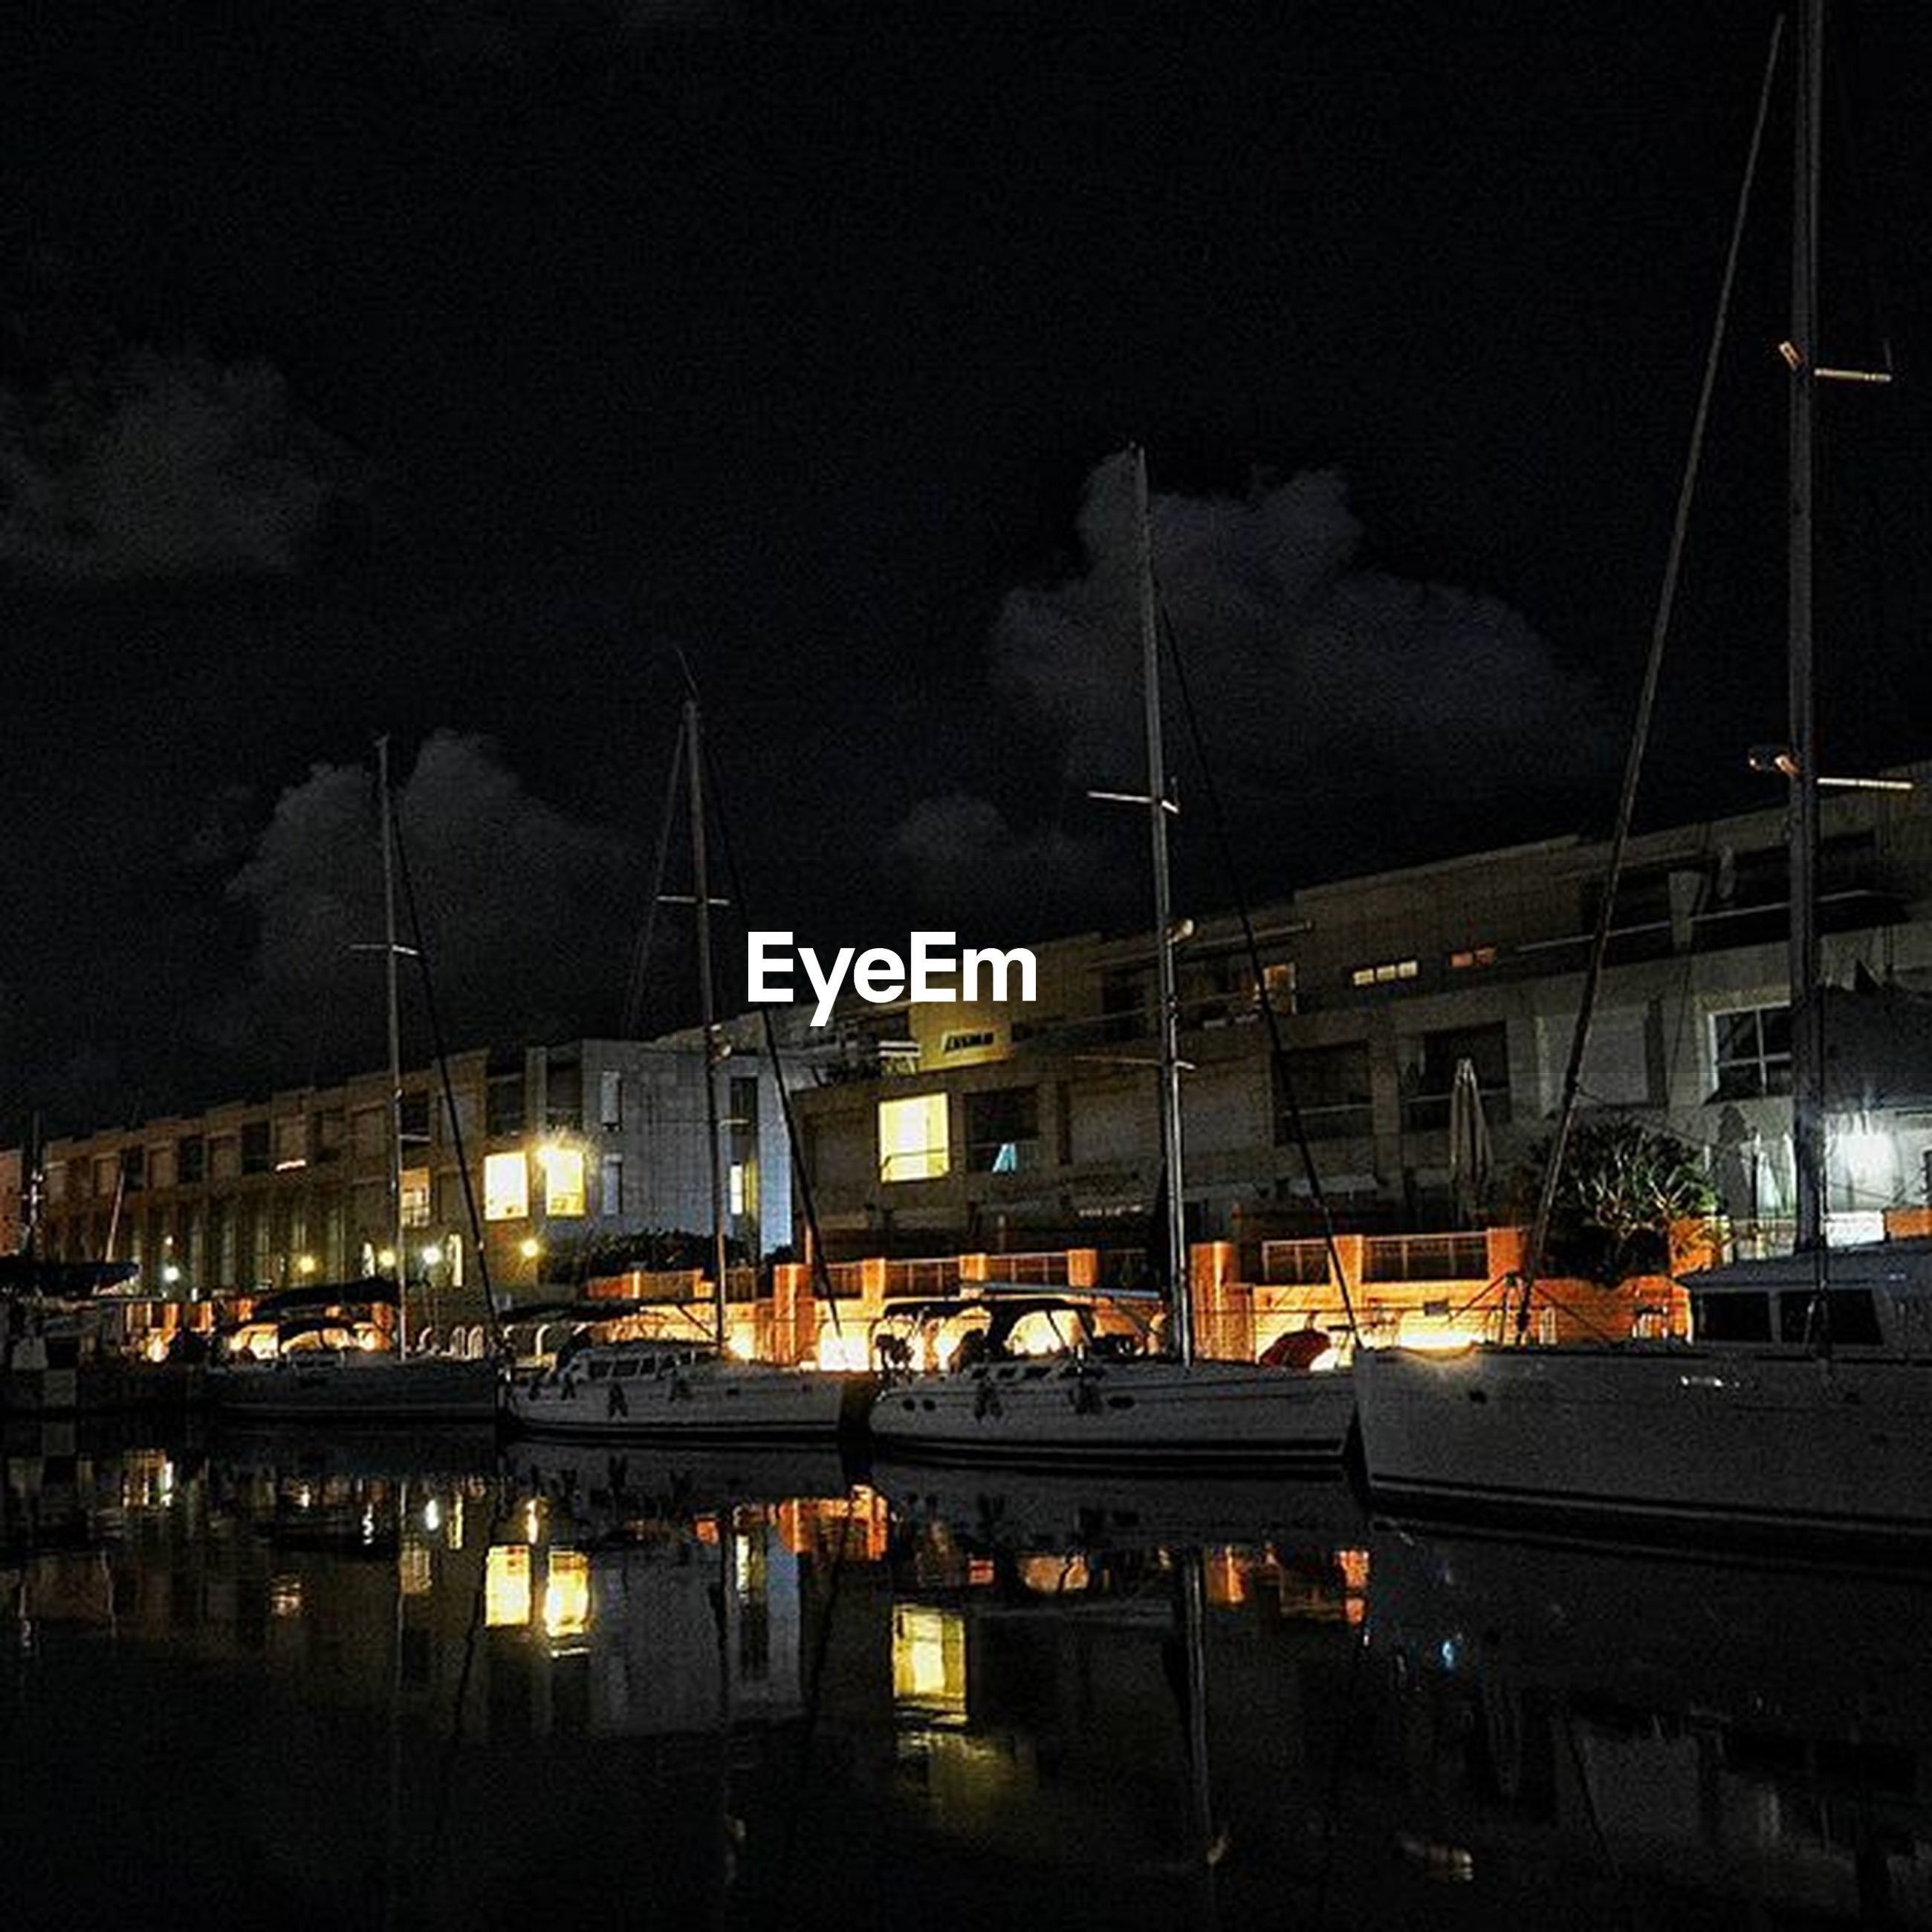 architecture, water, illuminated, night, built structure, building exterior, reflection, sky, river, transportation, waterfront, nautical vessel, mode of transport, harbor, city, moored, outdoors, lake, boat, dusk